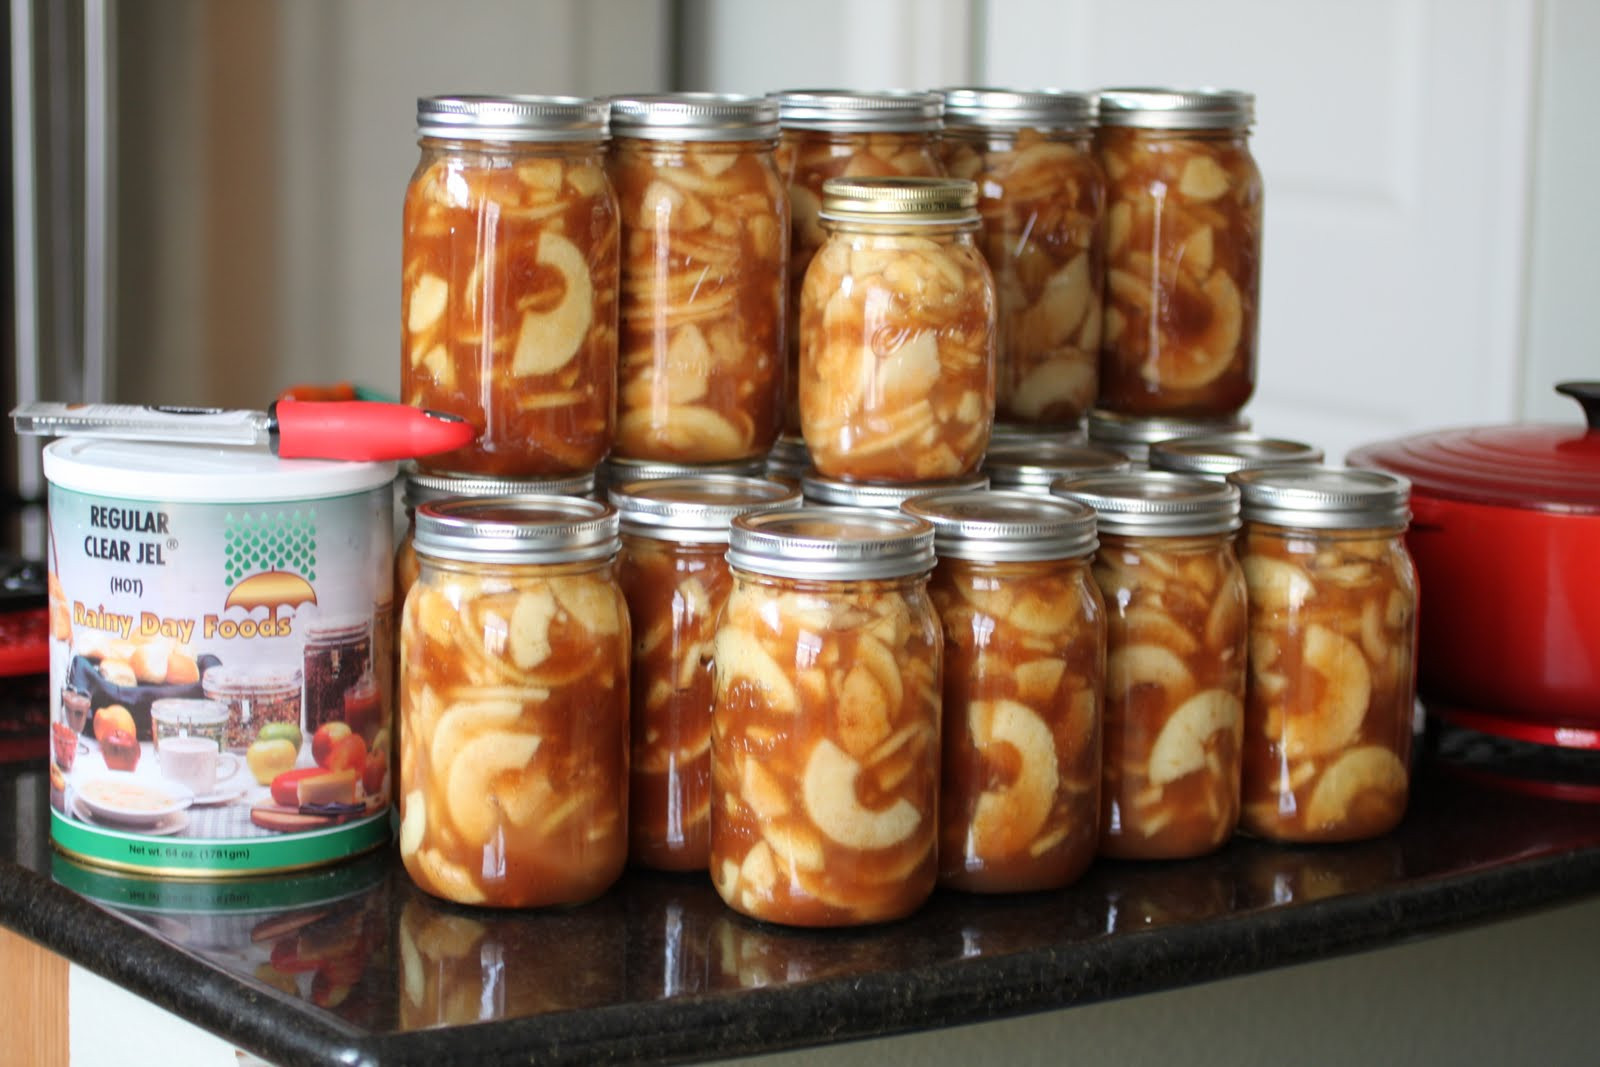 Apple Pie Filling Canned  Apple Pie Filling Recipe Easy Canning